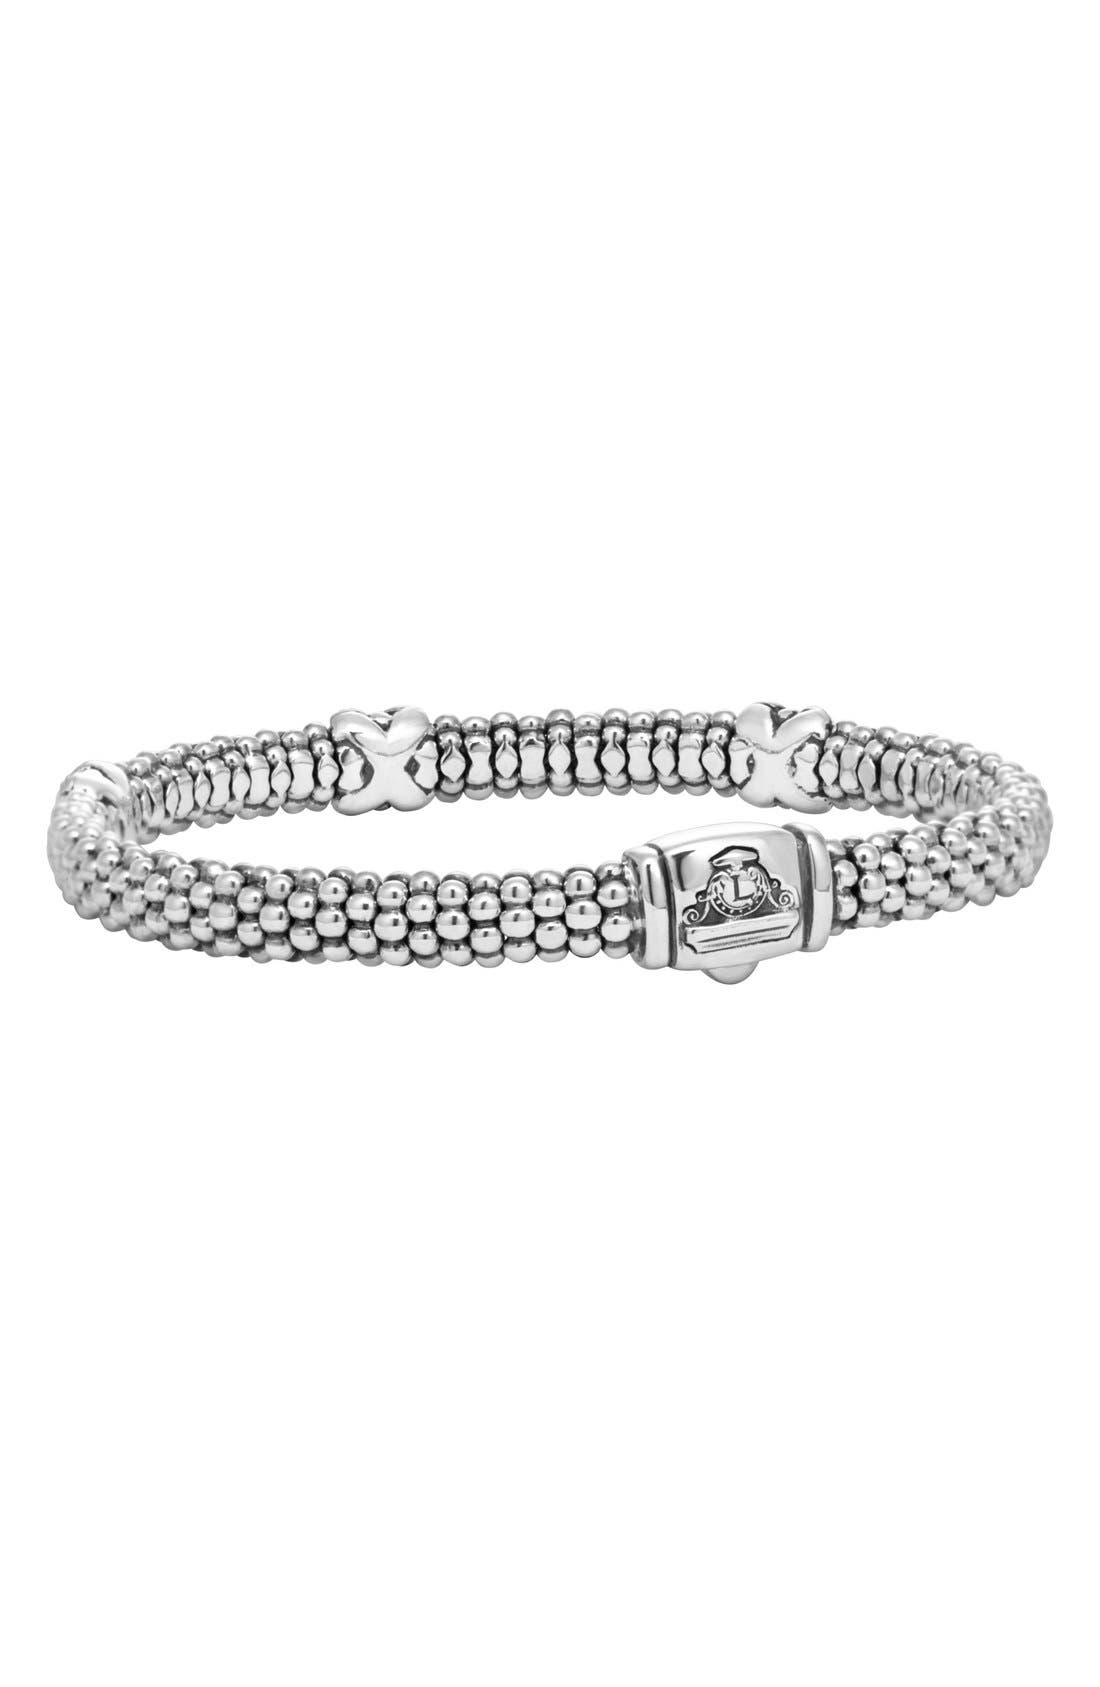 'Signature Caviar' Diamond Rope Bracelet,                             Alternate thumbnail 3, color,                             STERLING SILVER